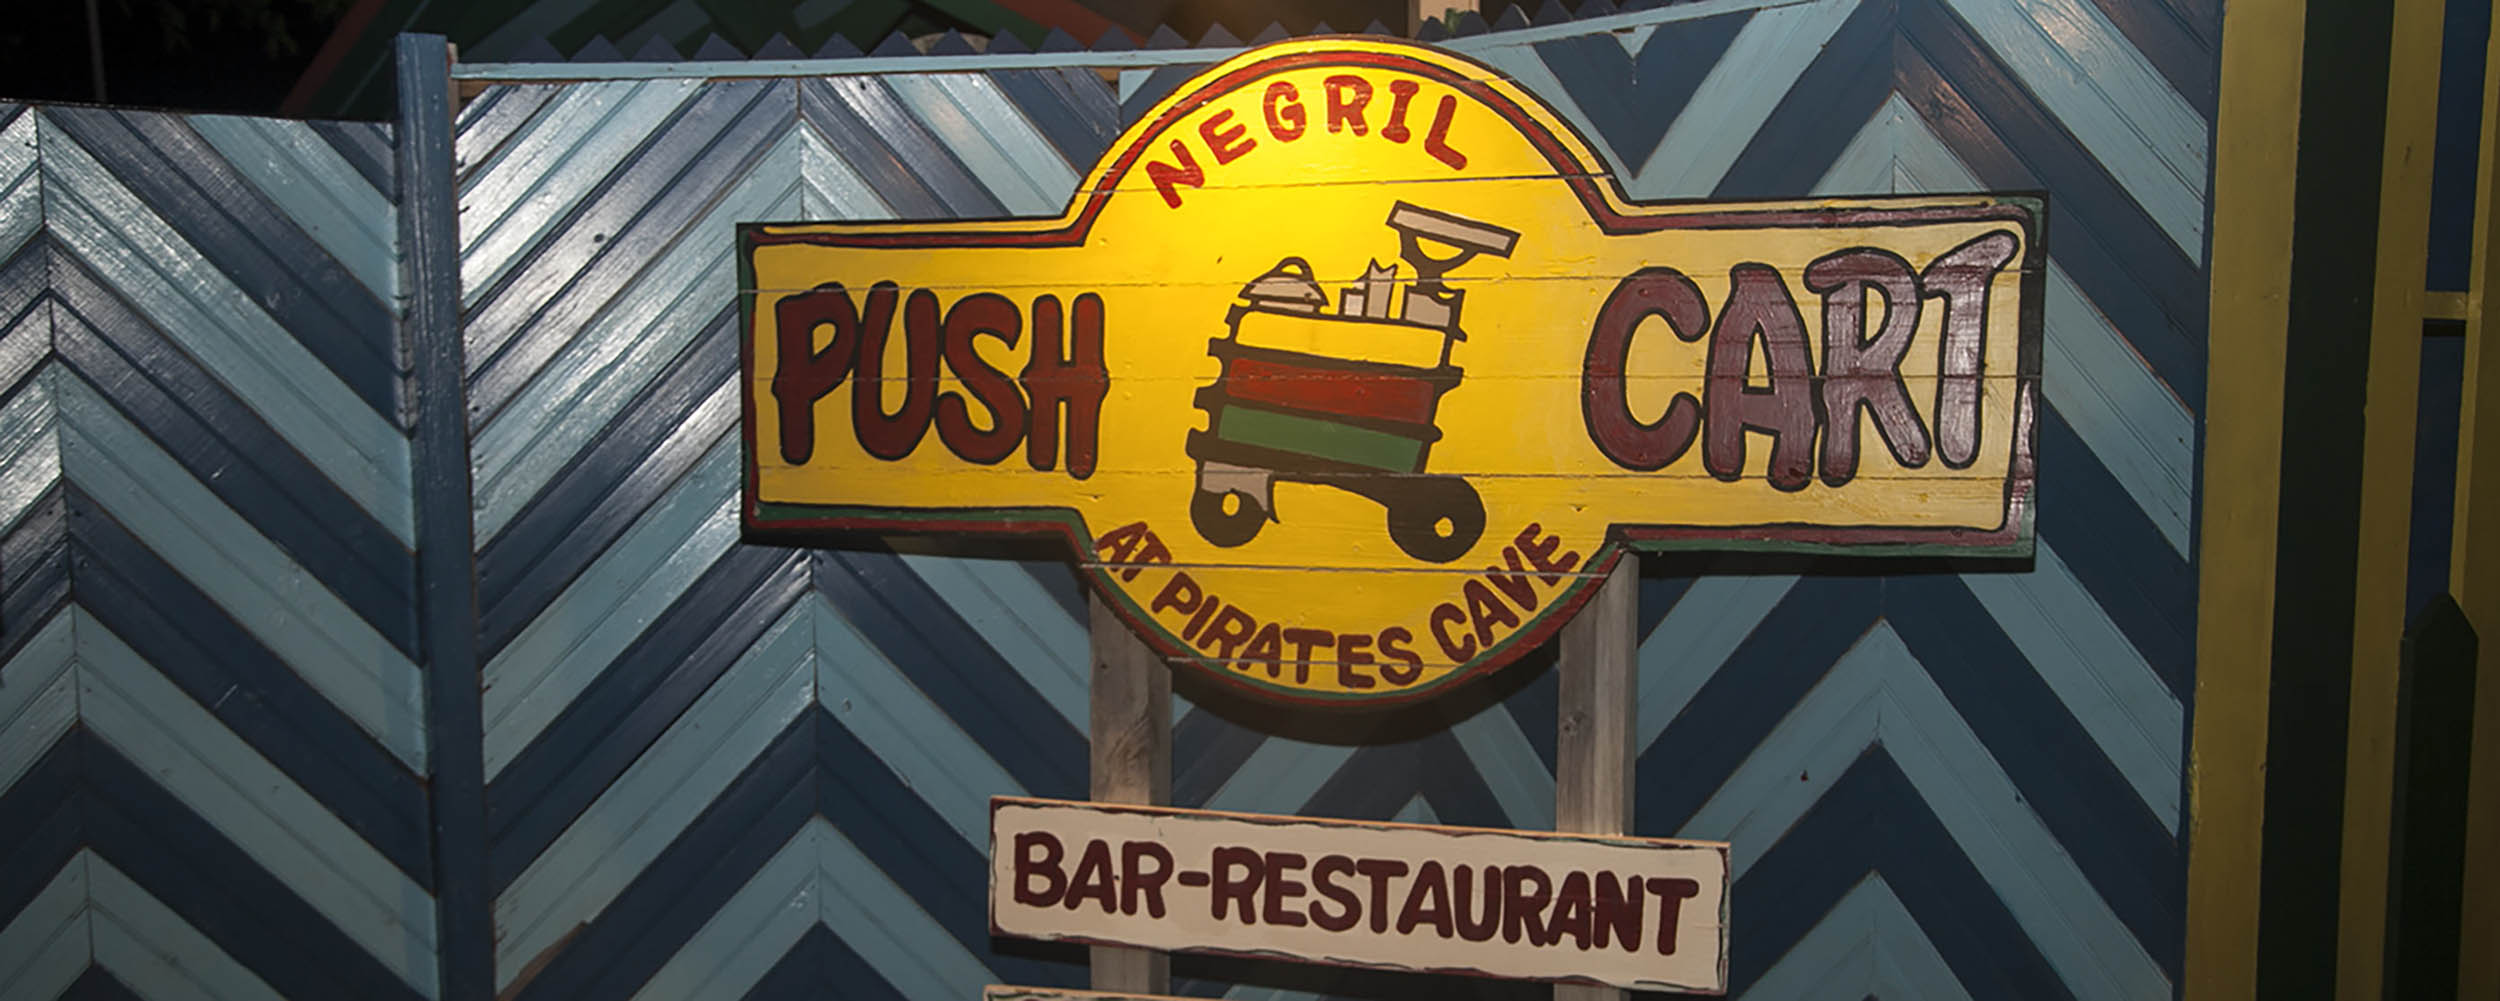 Push Cart Restaurant and Bar, West End, Negril Jamaica